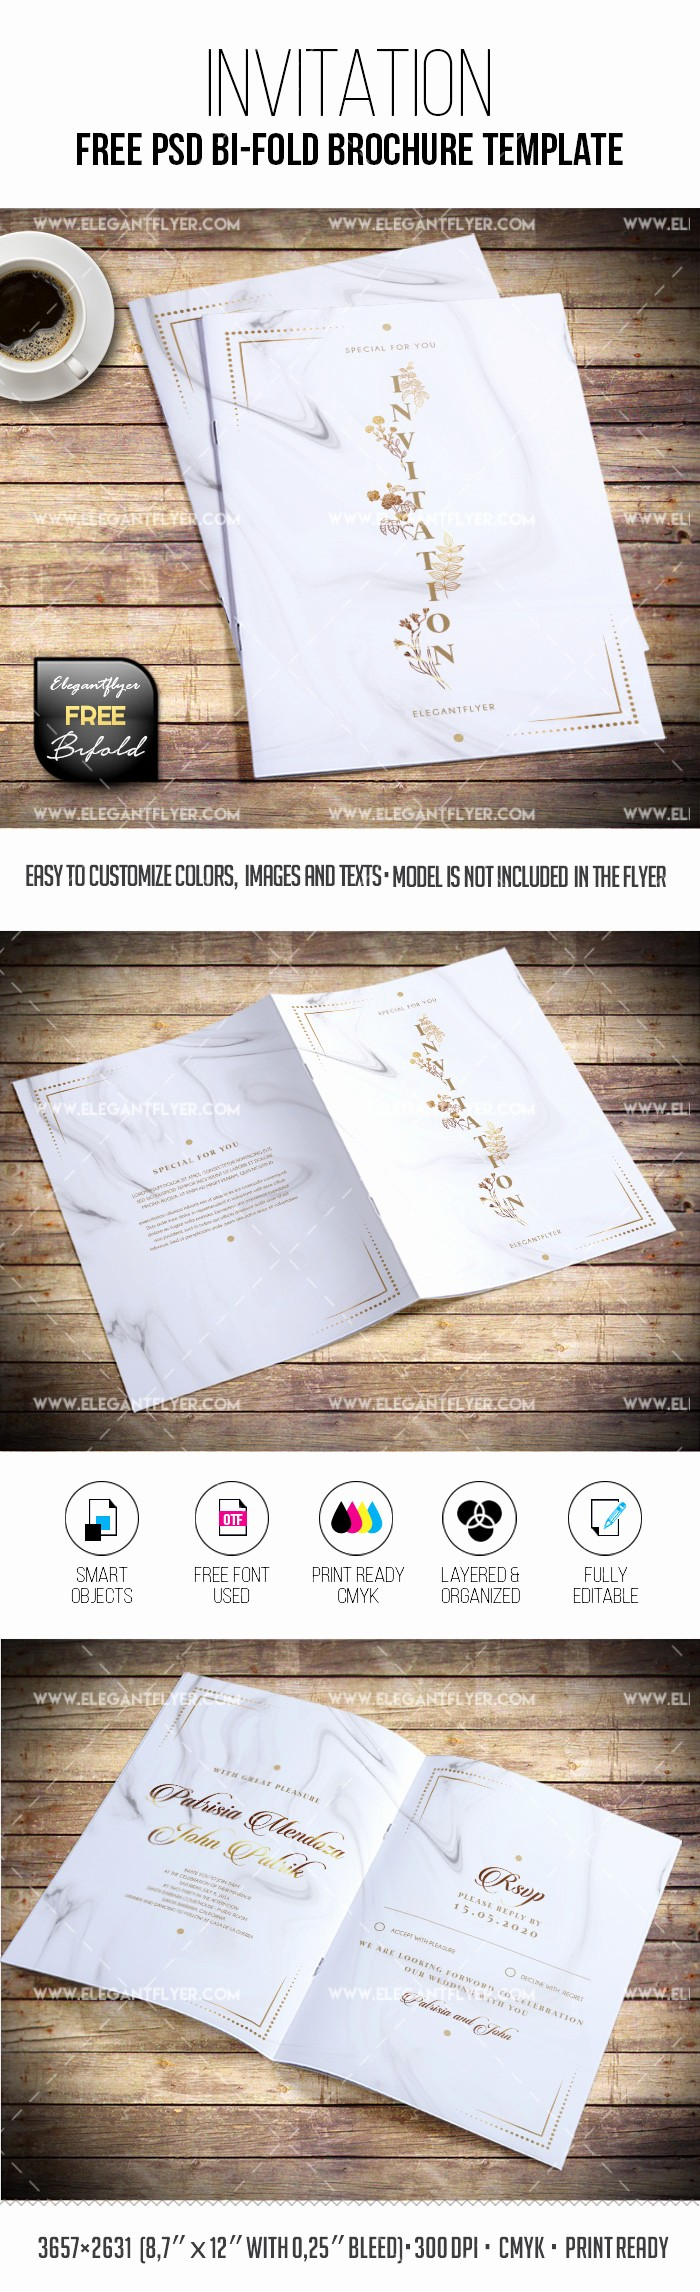 Bi-fold Card Template Lovely Invitation Card – Free Bi Fold Brochure Template – by